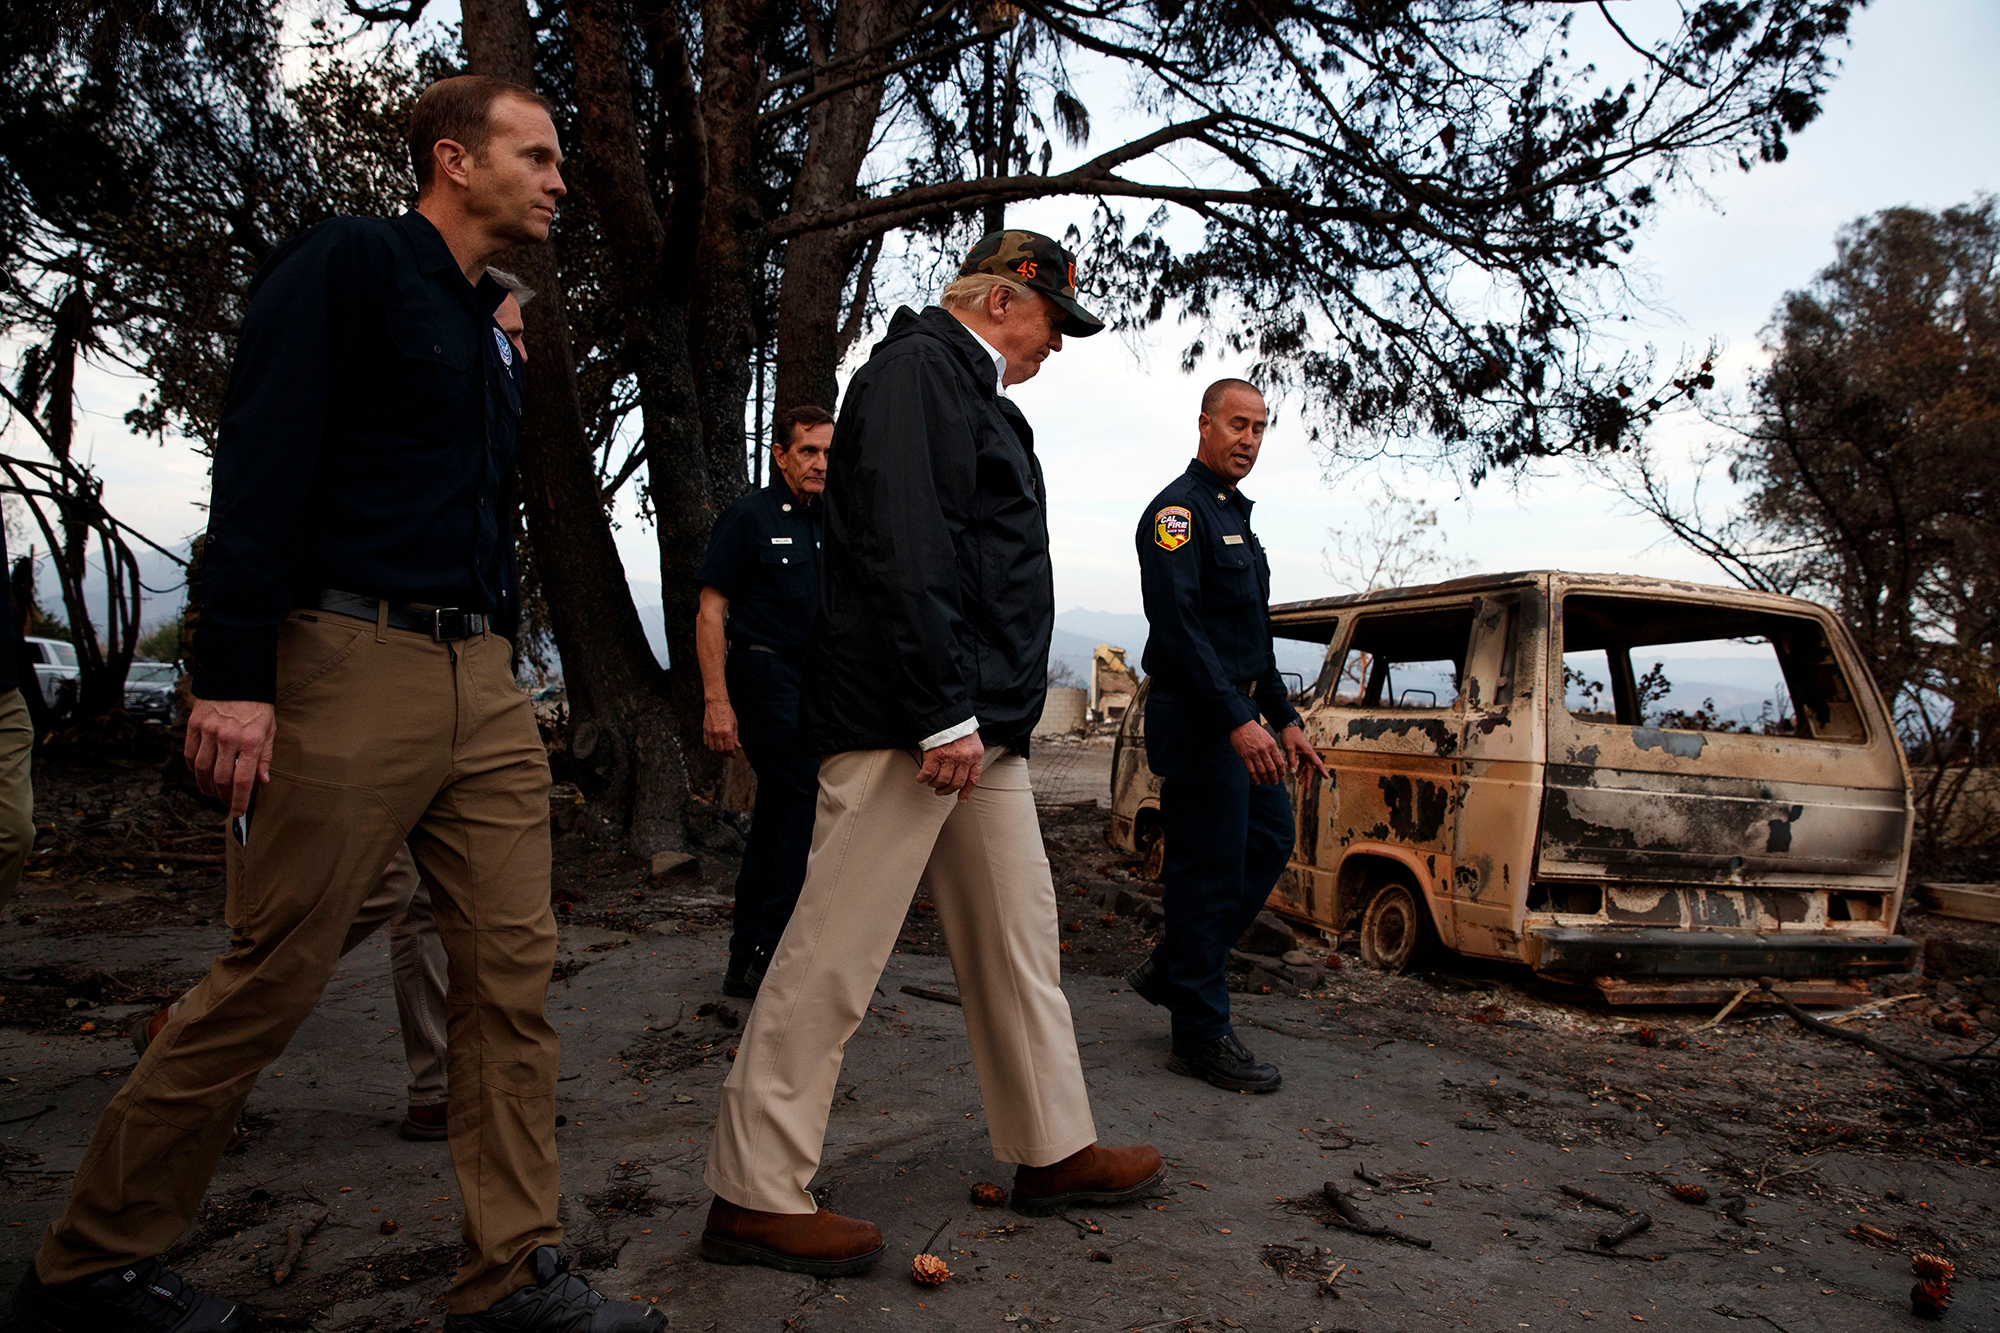 Wildfire Evacuees Not Impressed With Trump's Rake Remarks During California Visit